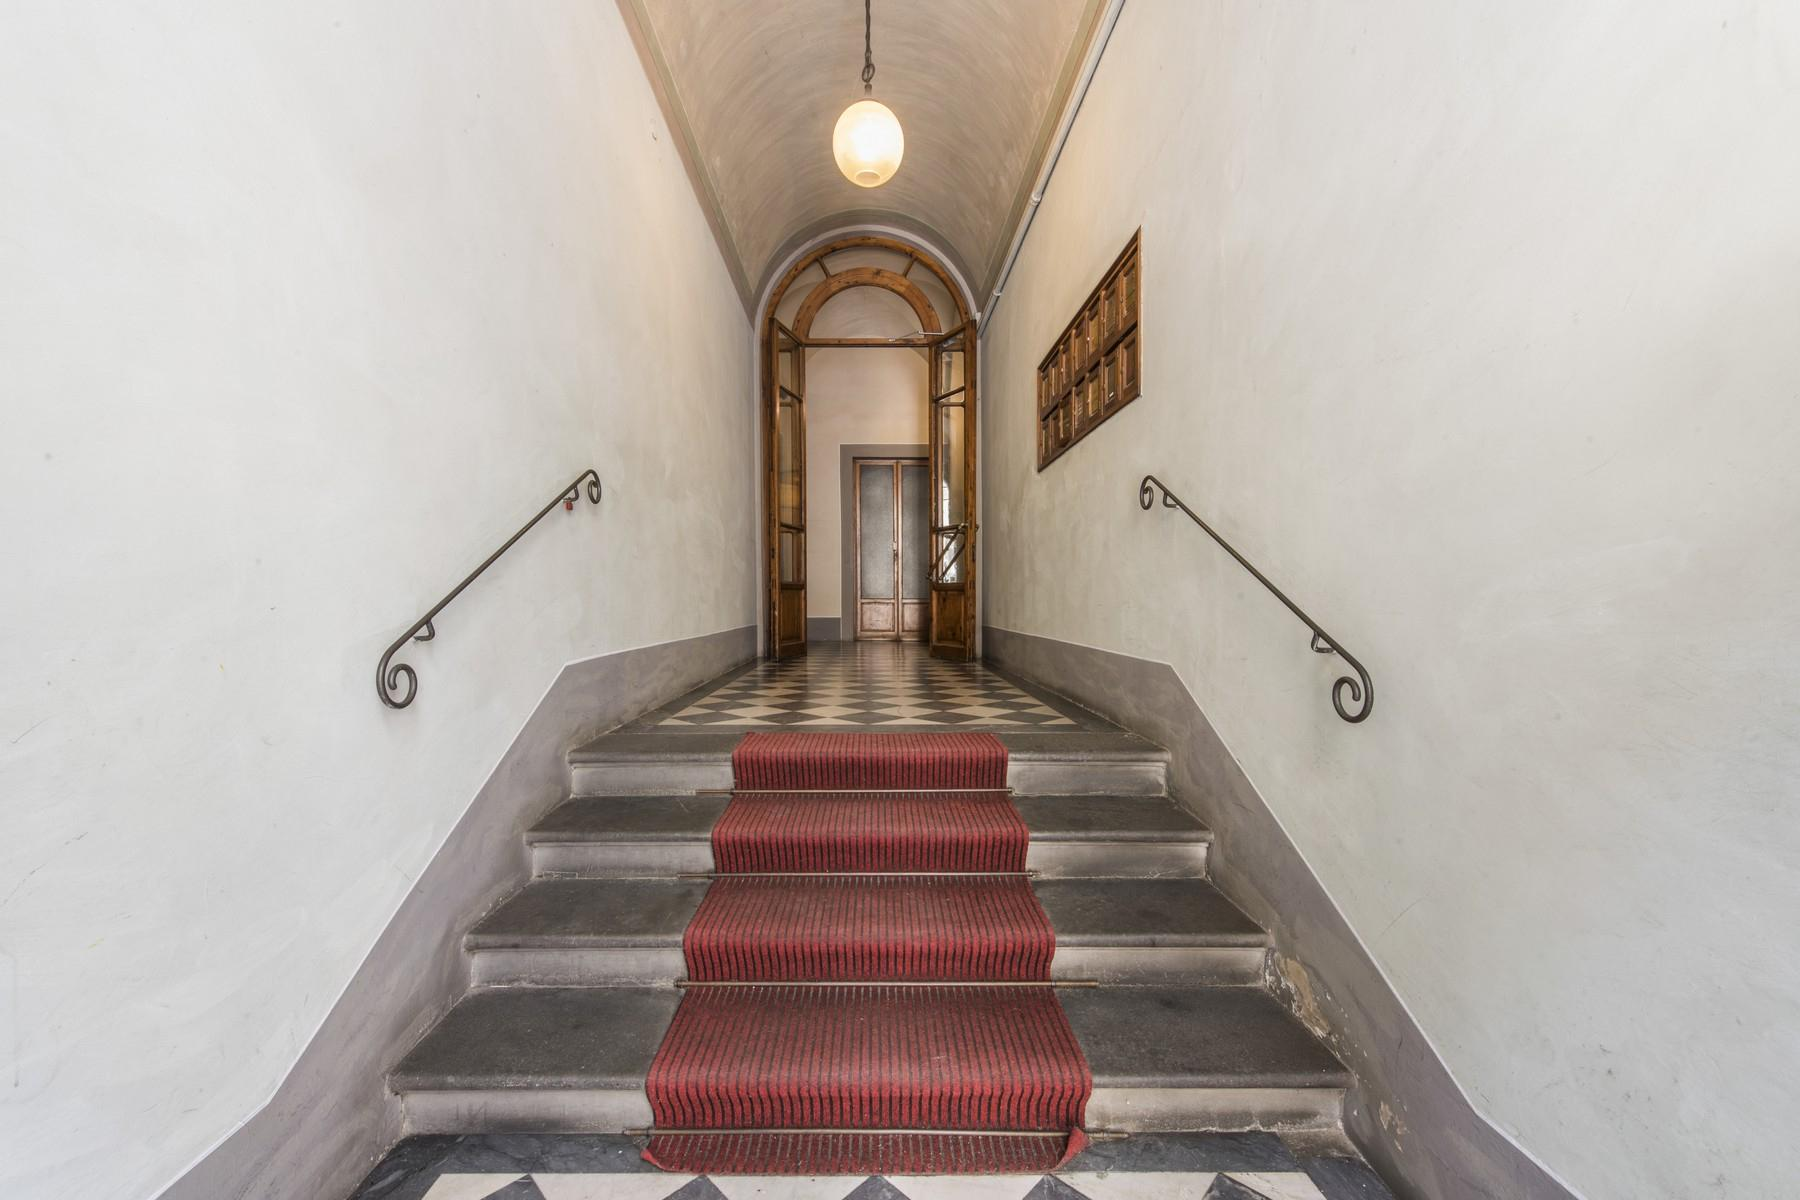 Magnificent 520sqm penthouse in a historic Florentine palazzo. - 11